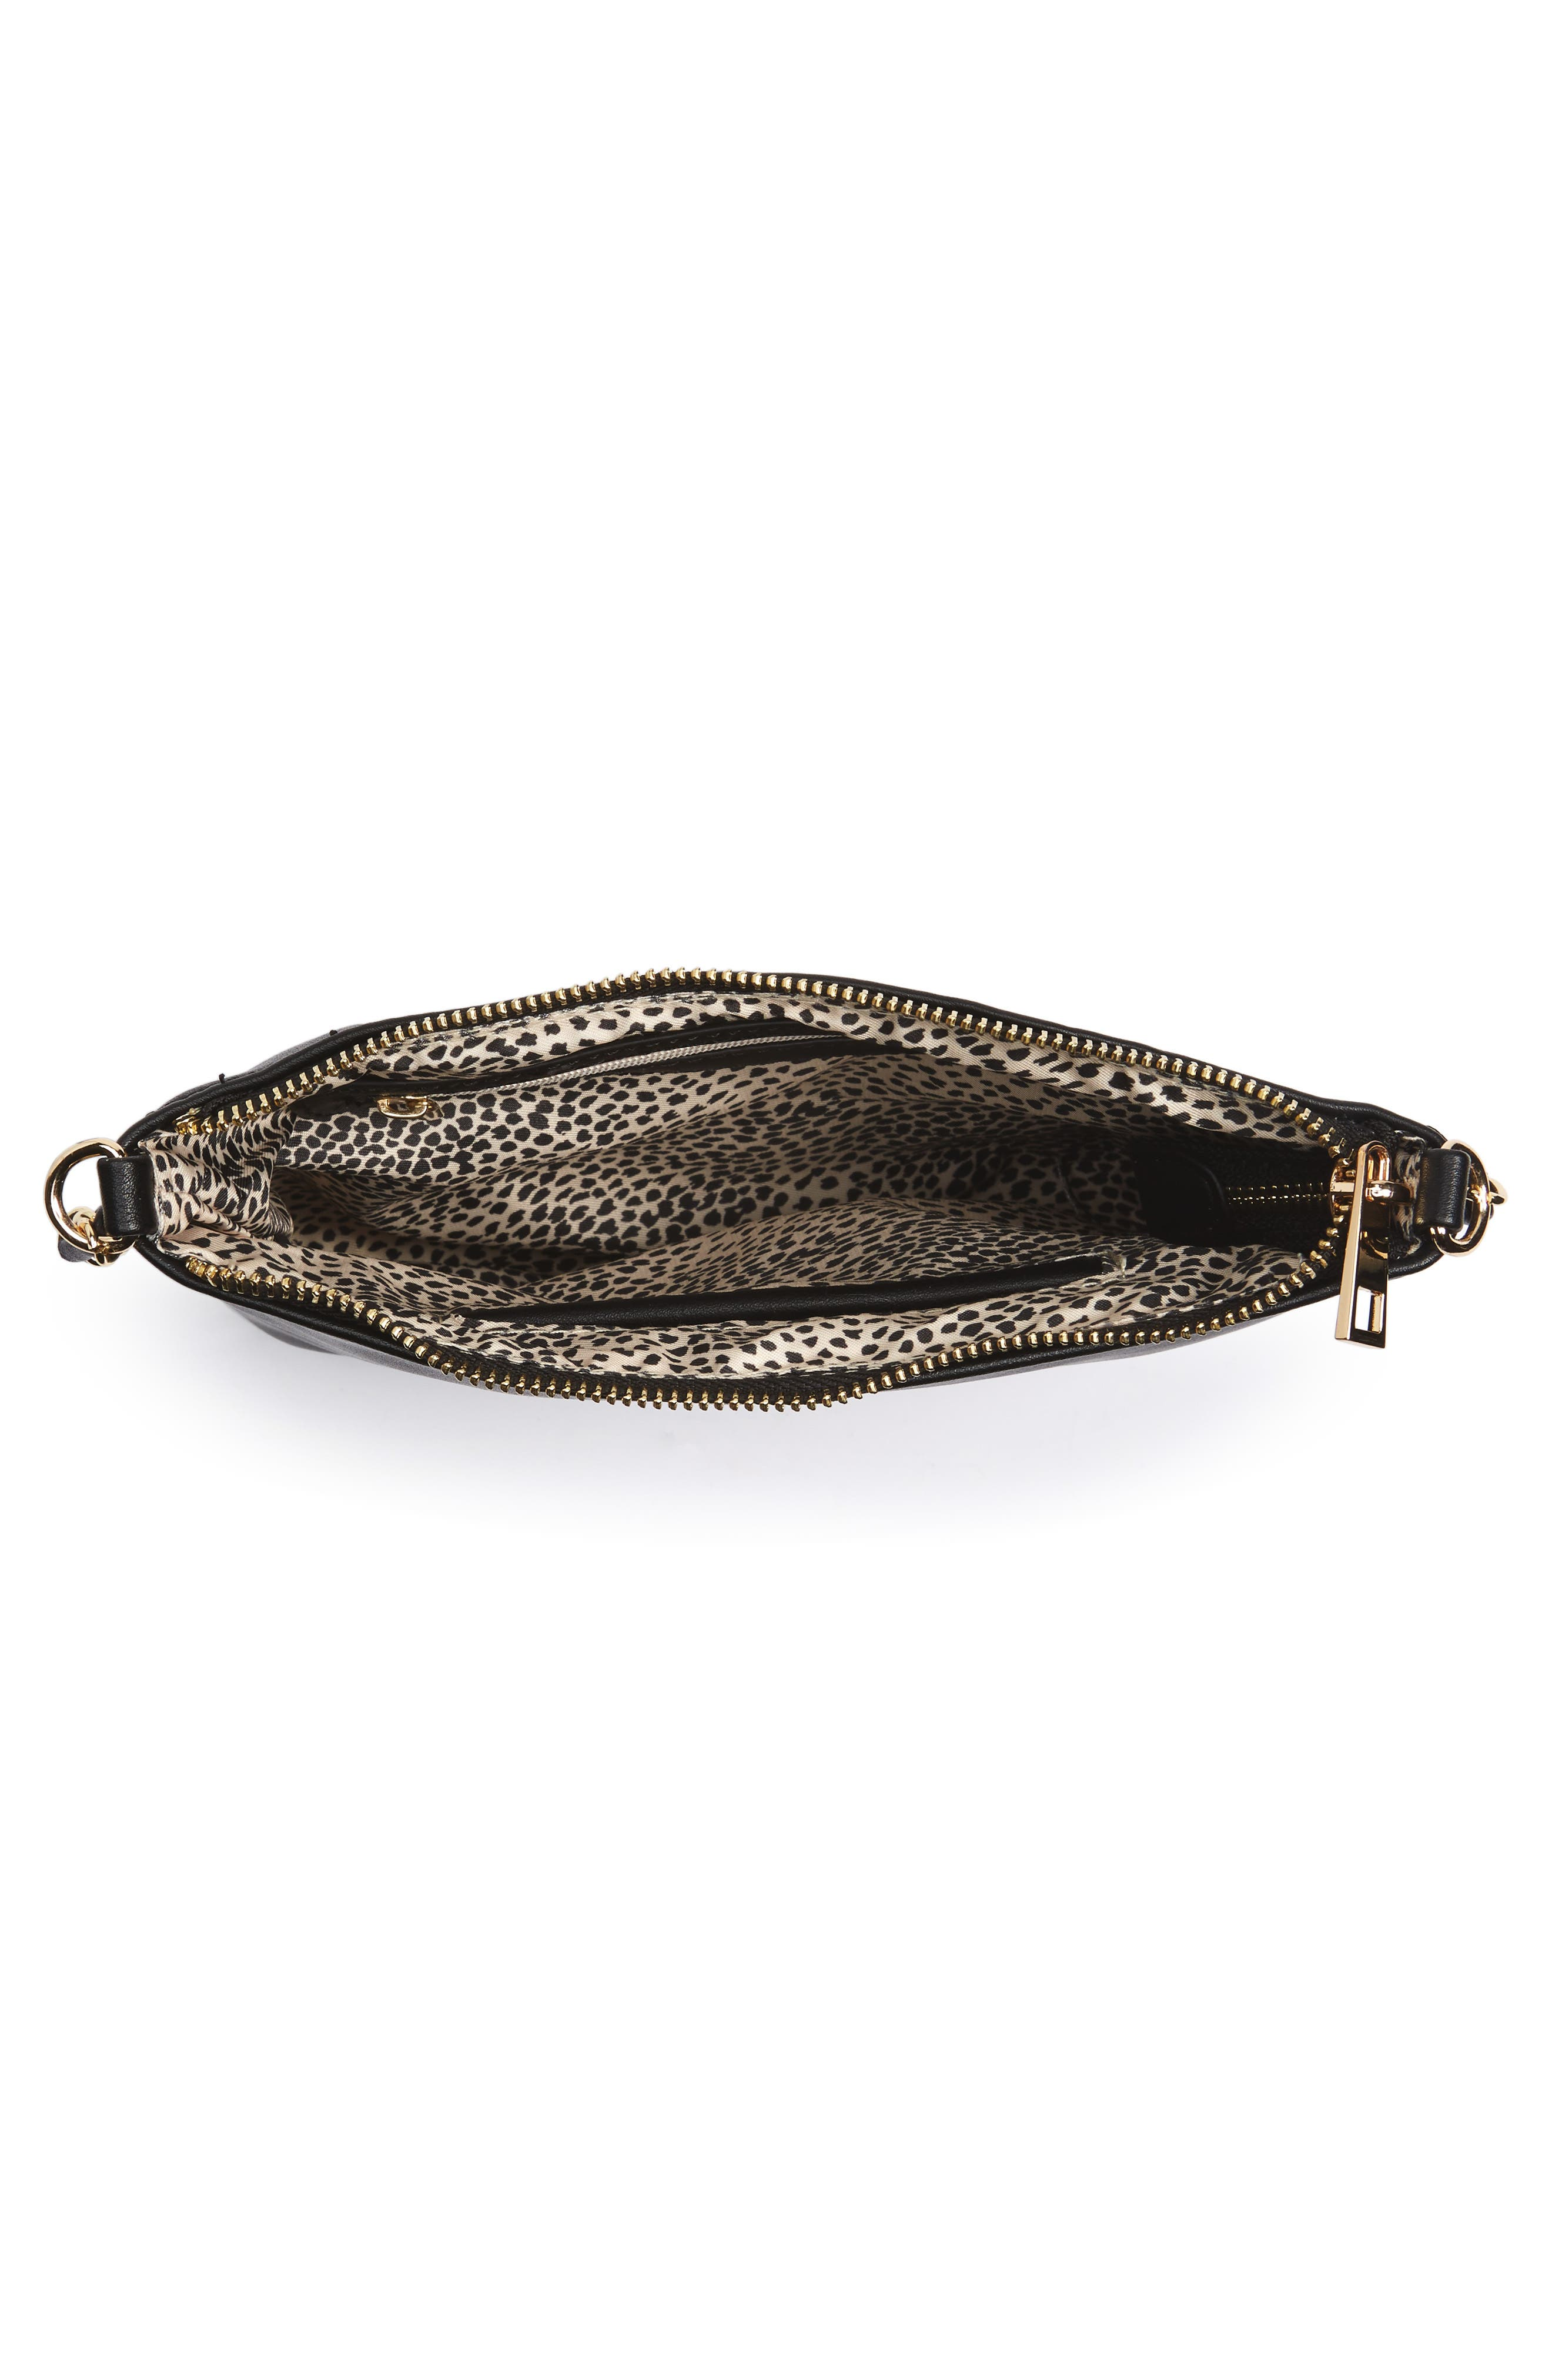 Alternate Image 3  - Emperia Faux Leather Crossbody Bag with Faux Fur Pom